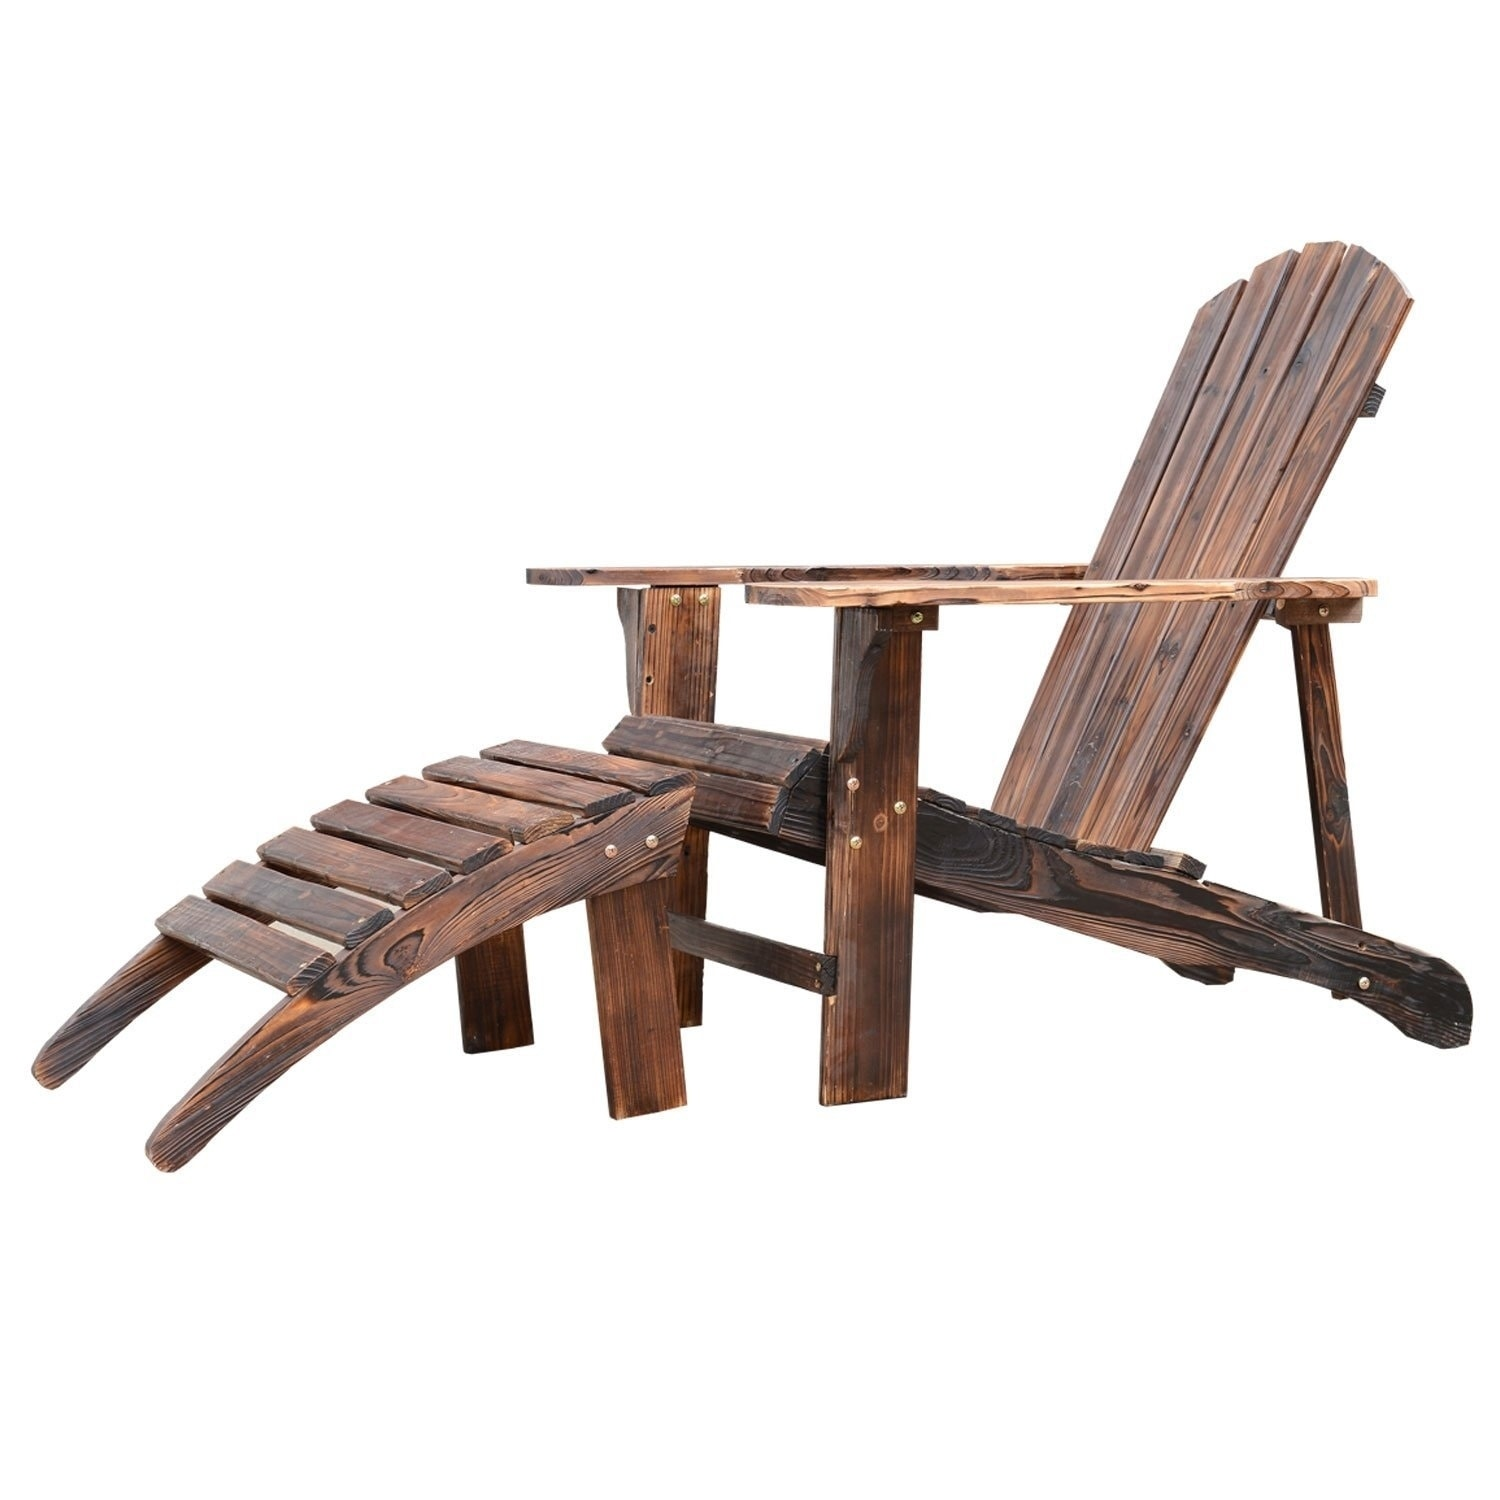 Shop Outsunny Wooden Adirondack Outdoor Patio Lounge Chair With